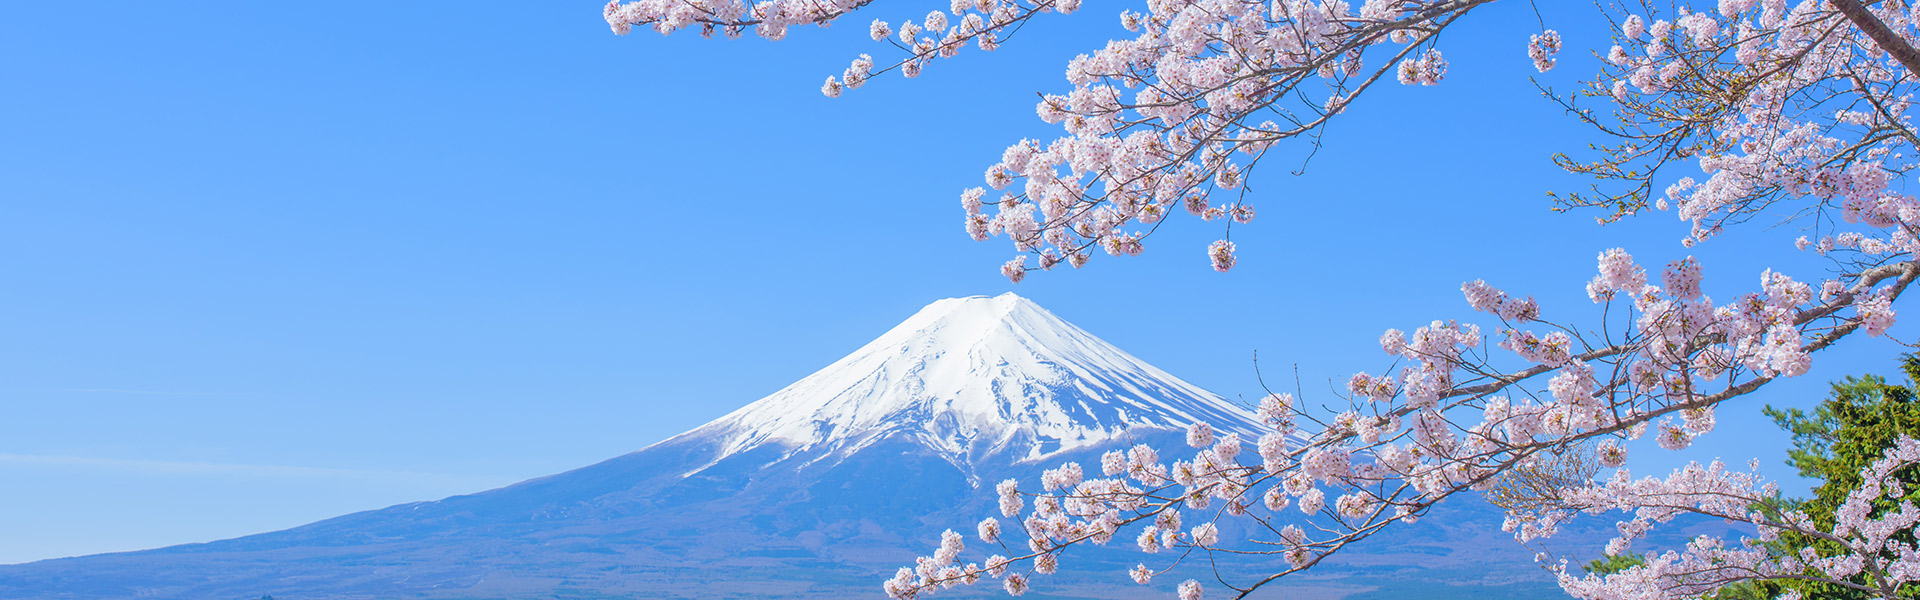 Business Class Upgrade to Japan&nbsp;-&nbsp;<strong>from</strong>&nbsp;£99